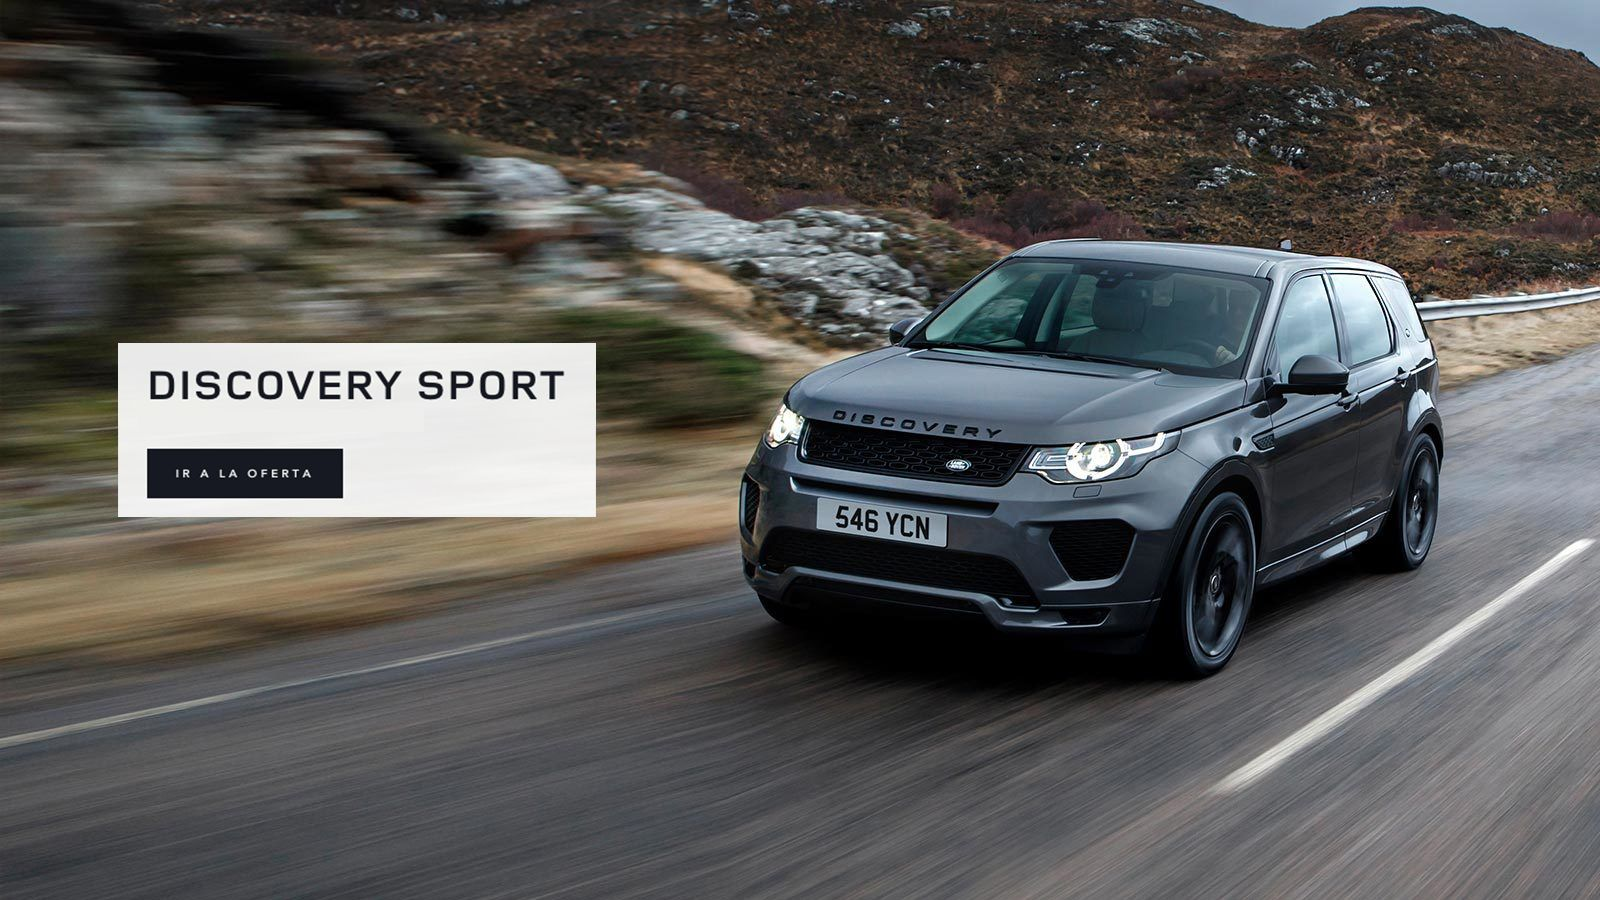 DISCOVERY SPORT.